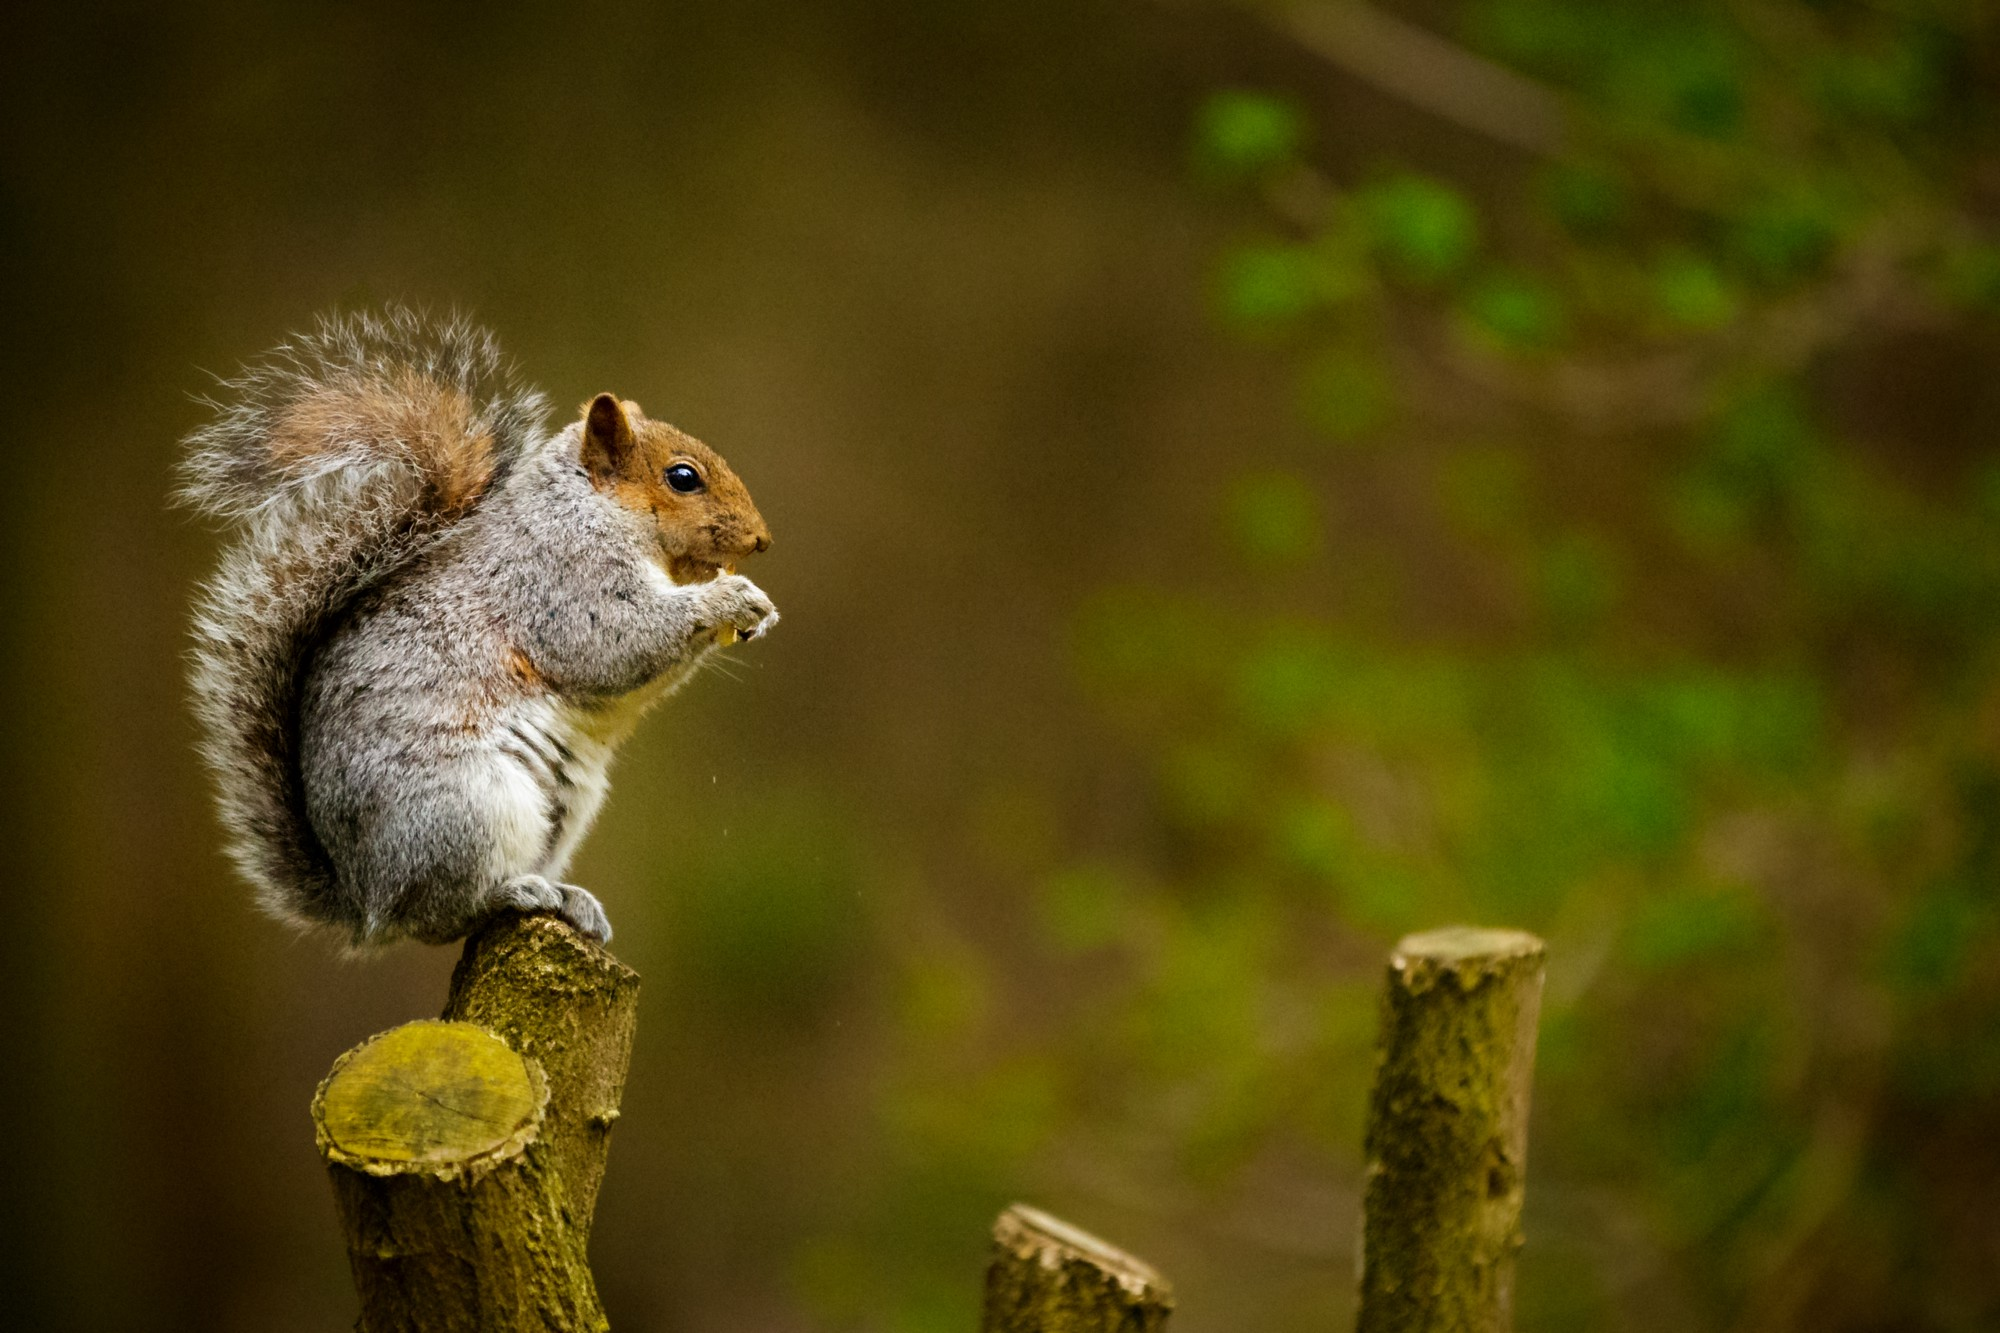 squirrel, resting on a tree stump